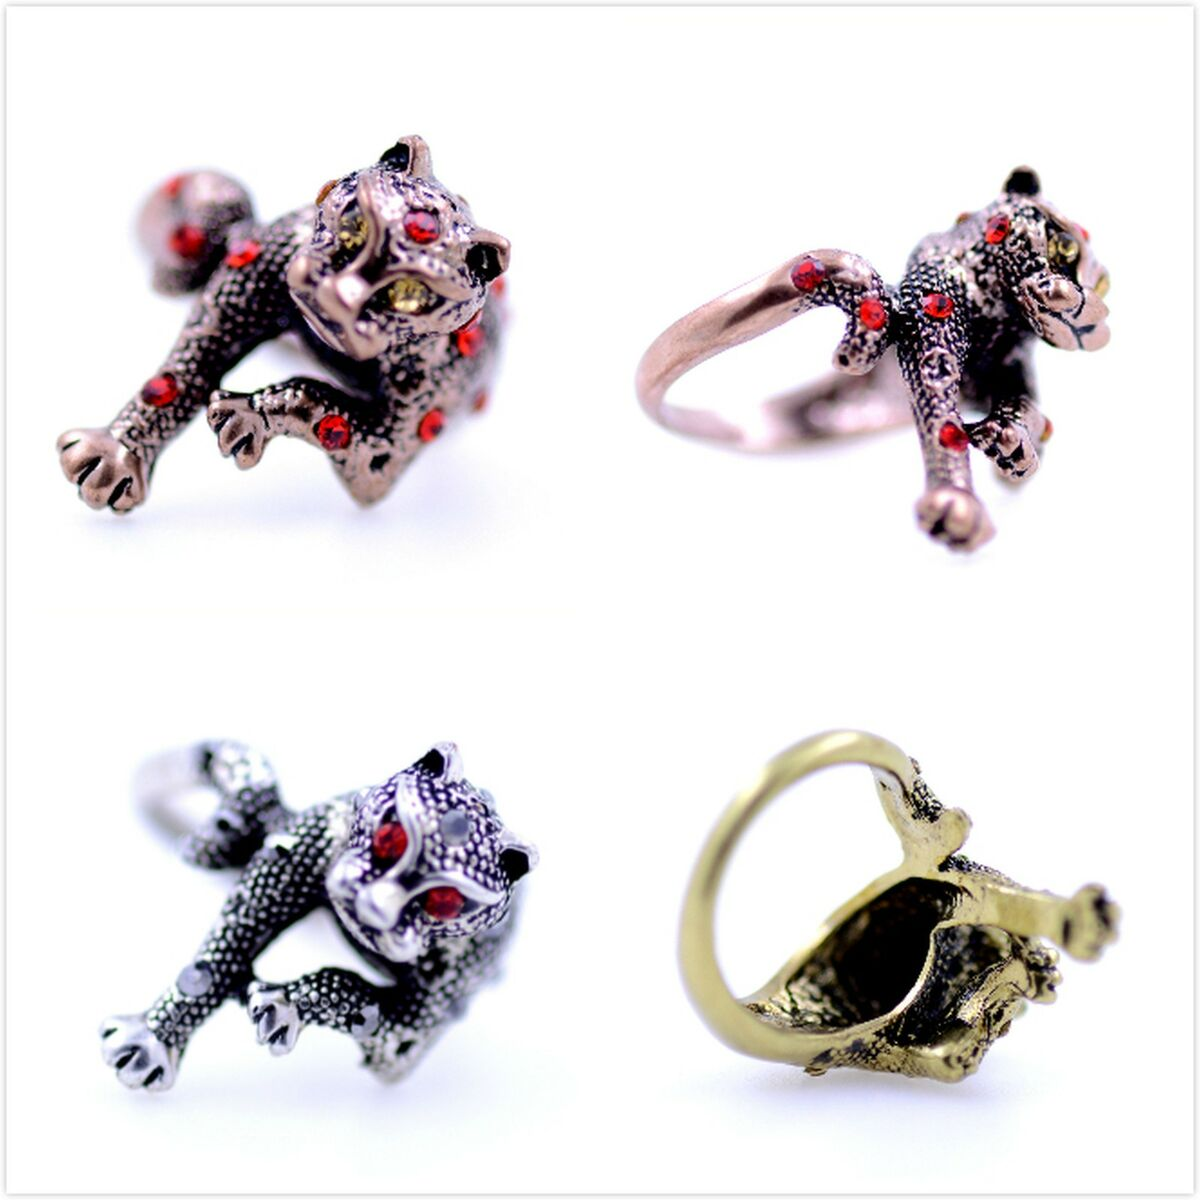 Uk size p and t prowling leopard cat ring head curls into tail nice design Prezzo: € 2,77